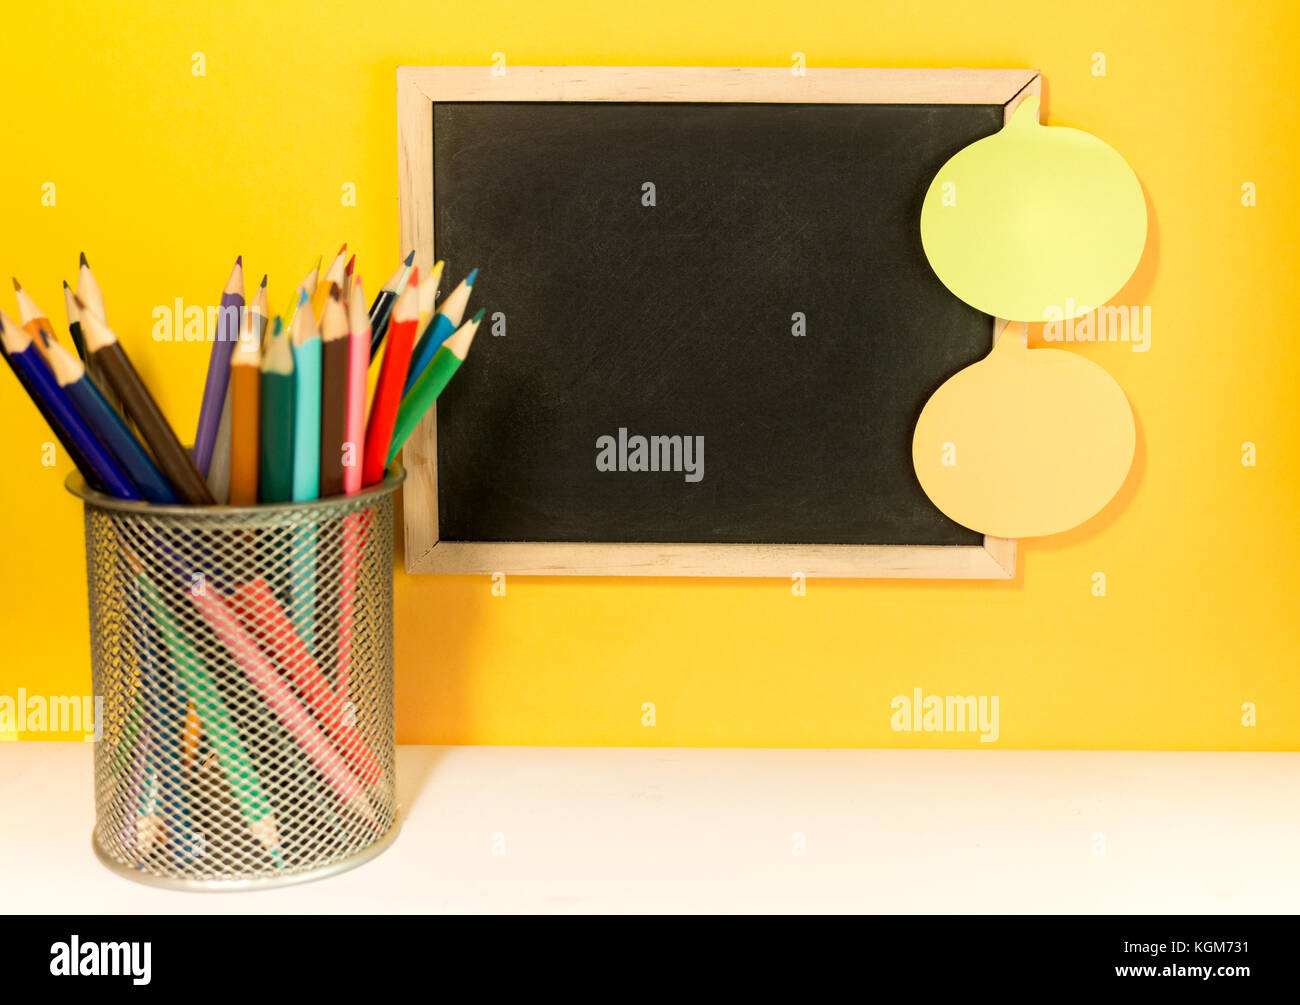 Chalk Board Wall Stock Photos & Chalk Board Wall Stock Images - Alamy